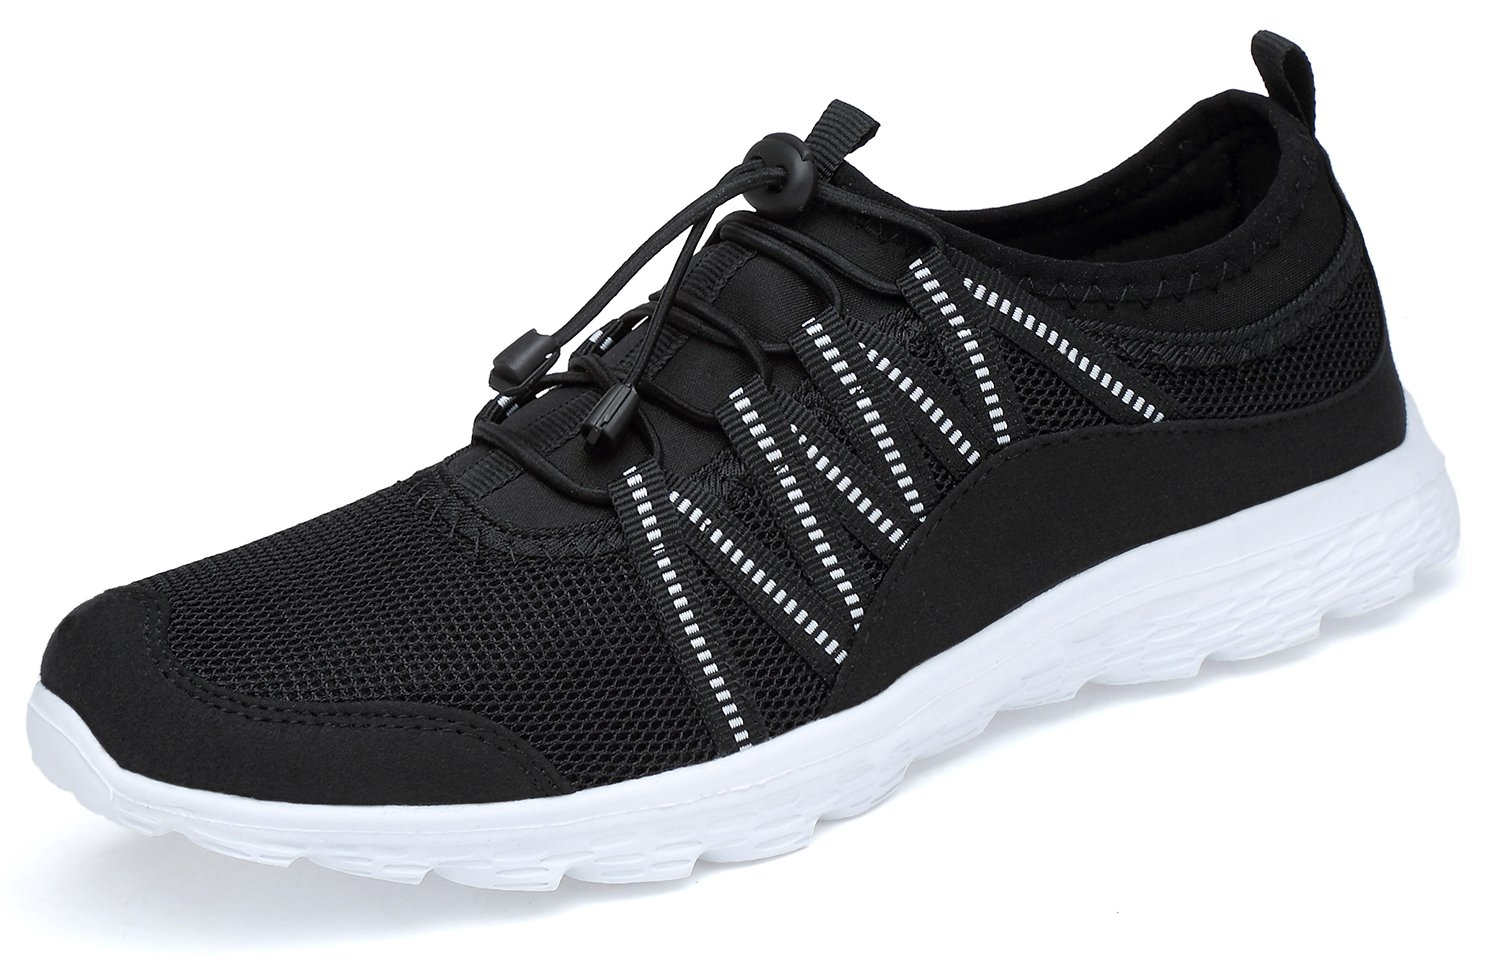 Men's Lightweight Walking Shoes Breathable Mesh Soft Sole for Casual Walk Outdoor Workout Travel Work by Belilent (Image #7)